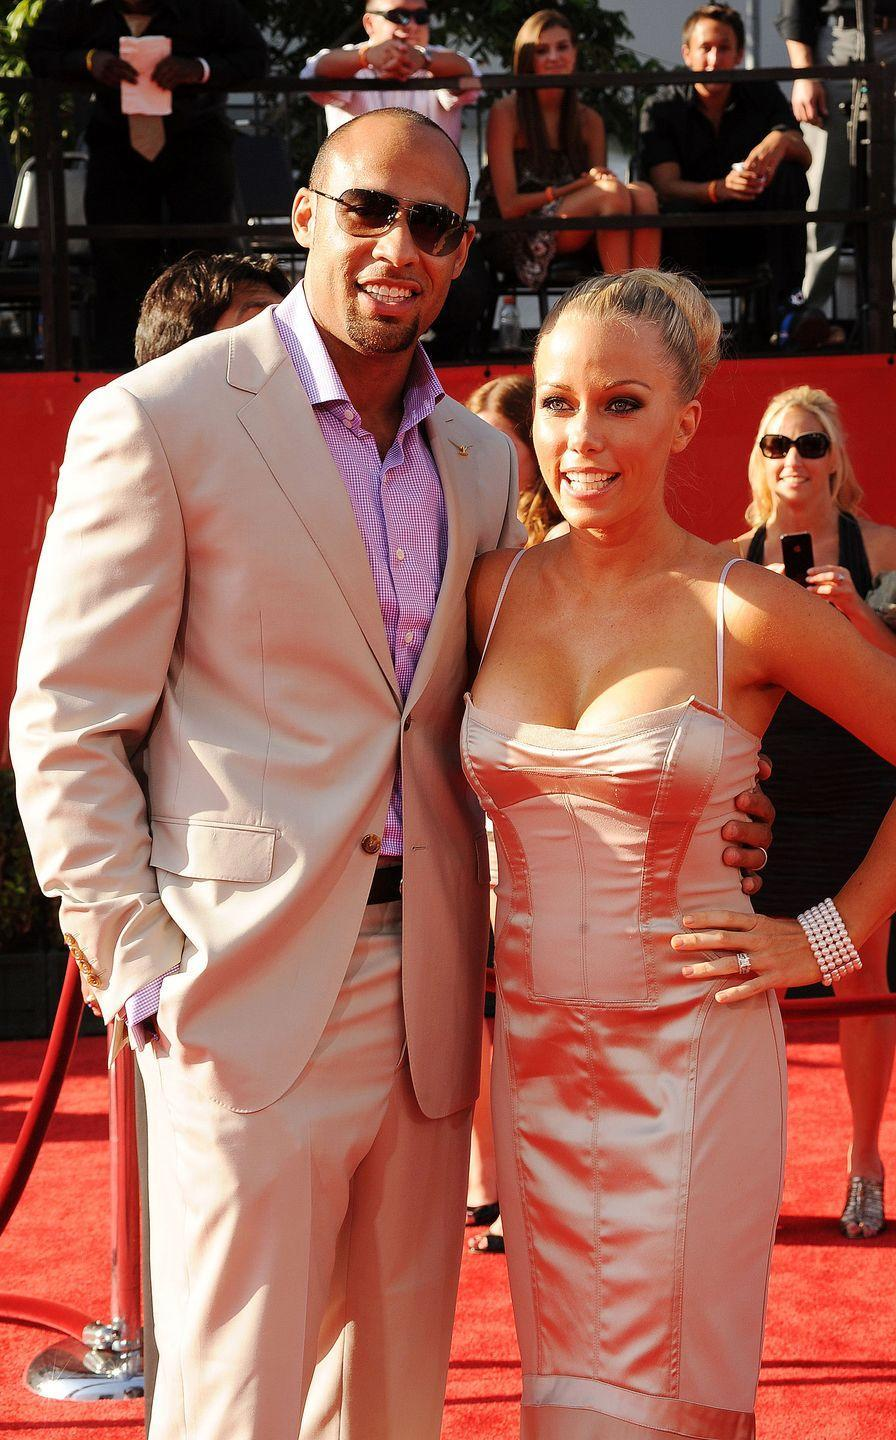 """<p>This couple documented their marital troubles on their reality show, <em>Kendra On Top</em> in 2014, when rumors of Hank stepping out on a pregnant Kendra surfaced. The two worked on their marriage in front of the cameras for as long as they could before separating and divorcing in 2018, per <a href=""""https://people.com/tv/kendra-wilkinson-hank-baskett-marriage-cheating-scandal/"""" rel=""""nofollow noopener"""" target=""""_blank"""" data-ylk=""""slk:People"""" class=""""link rapid-noclick-resp""""><em>People</em></a>.</p>"""